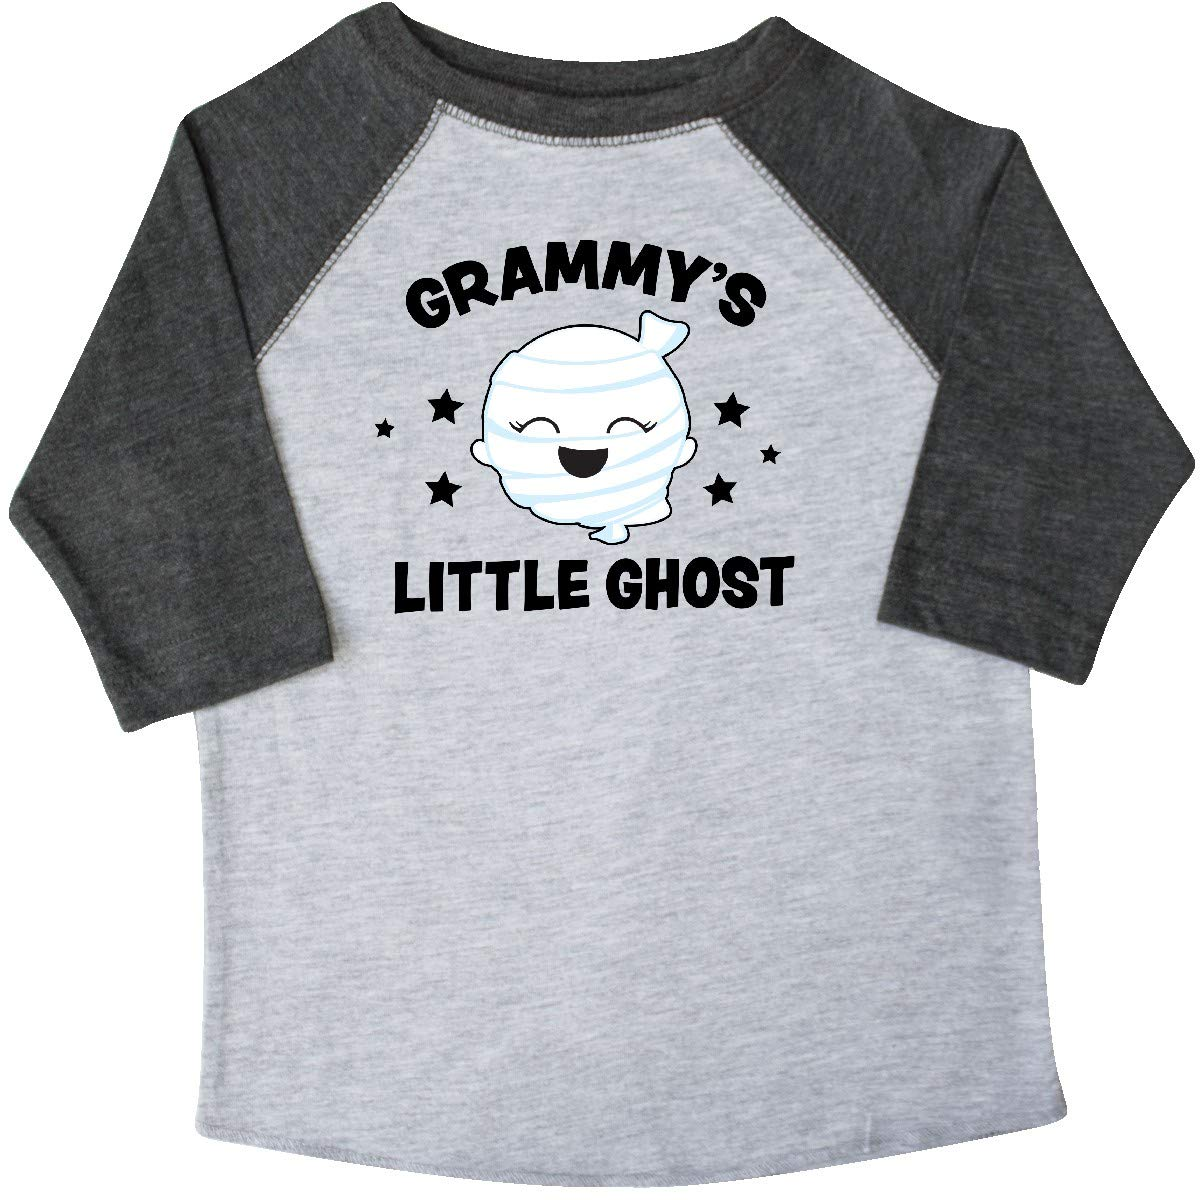 inktastic Cute Grammys Little Ghost with Stars Toddler T-Shirt